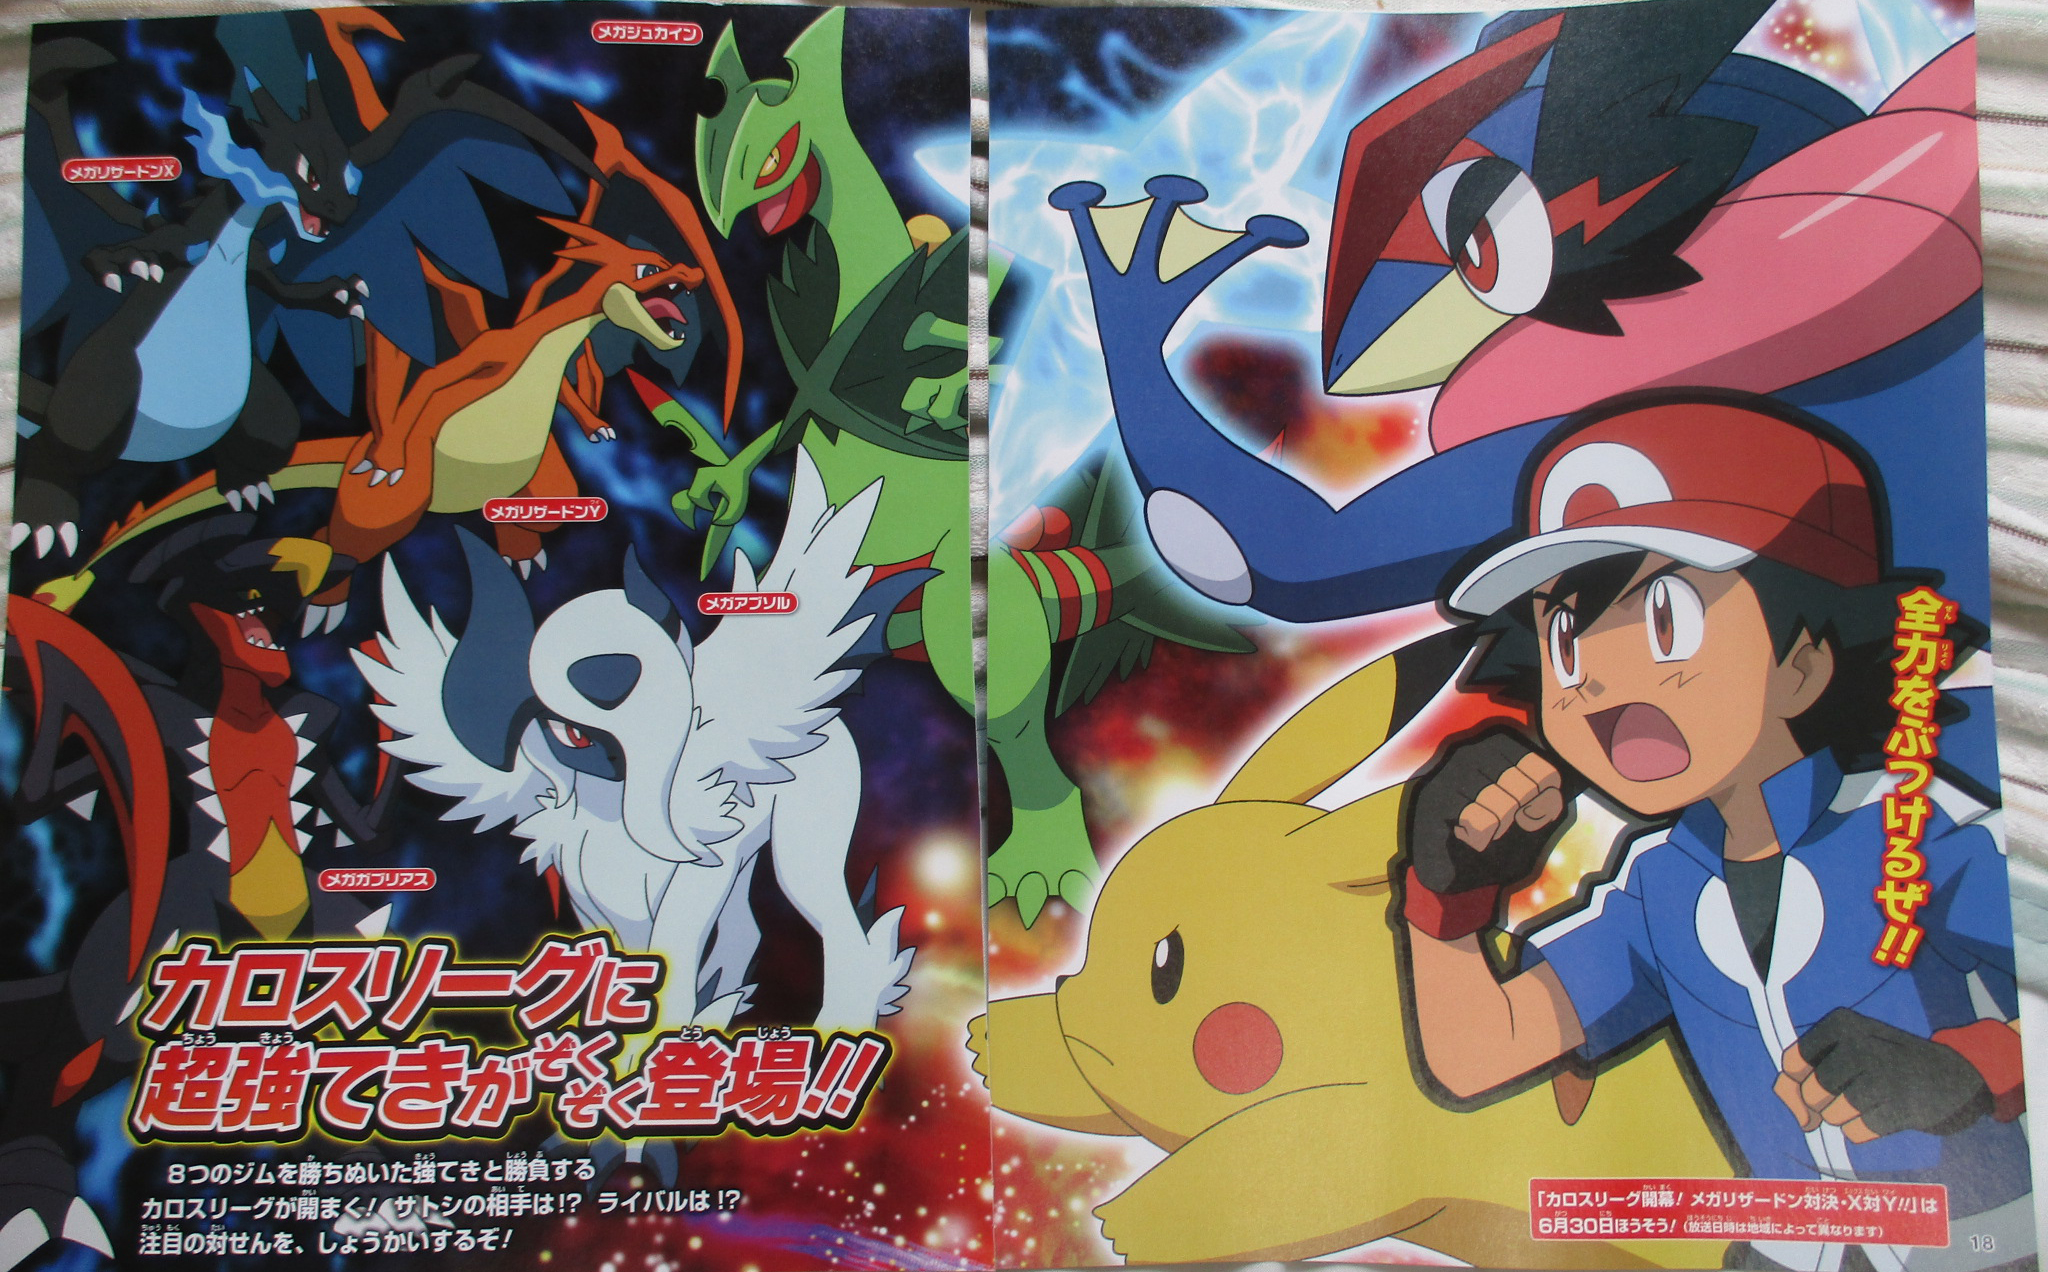 anticipazioni_xyz032_megaevoluzioni_lega_pokemontimes-it